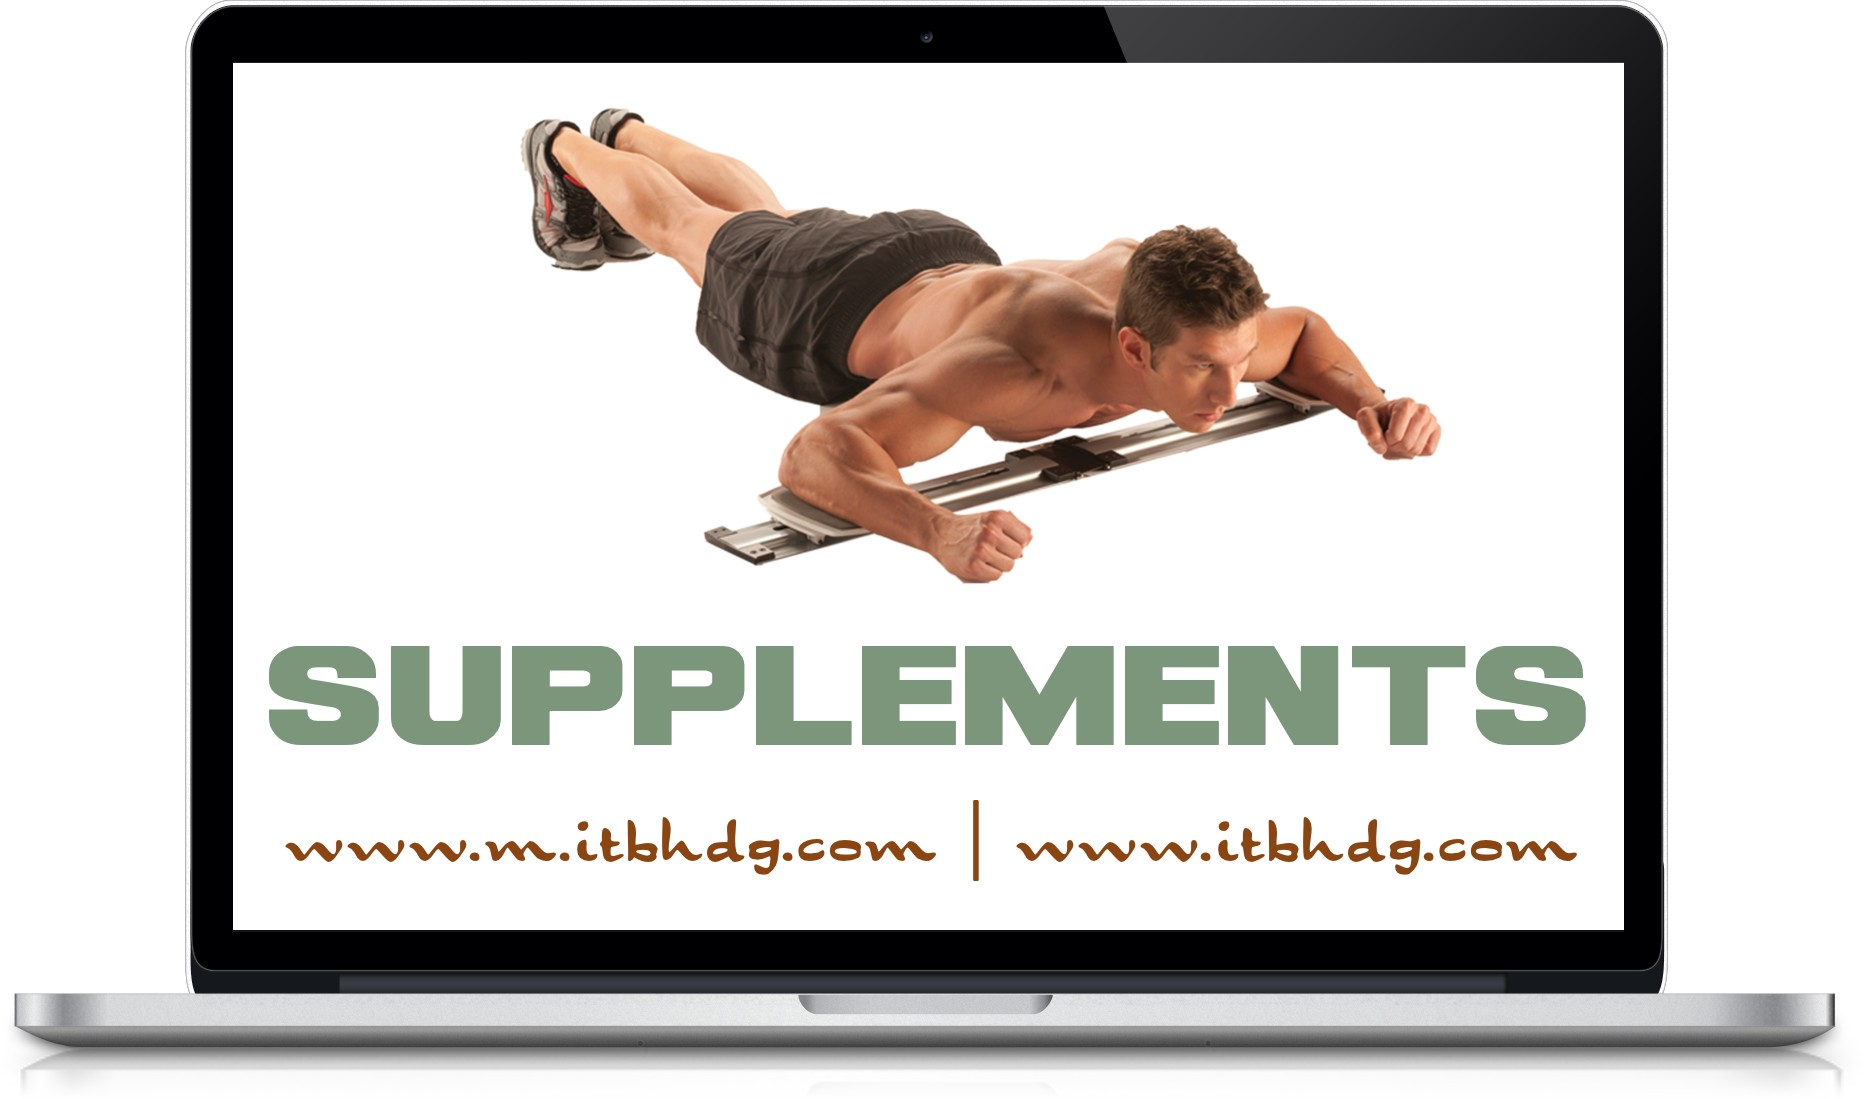 Dietary Supplements Shop, Specialty Store, Online Store | Save up to 75% today | www.m.itbhdg.com | www.itbhdg.com